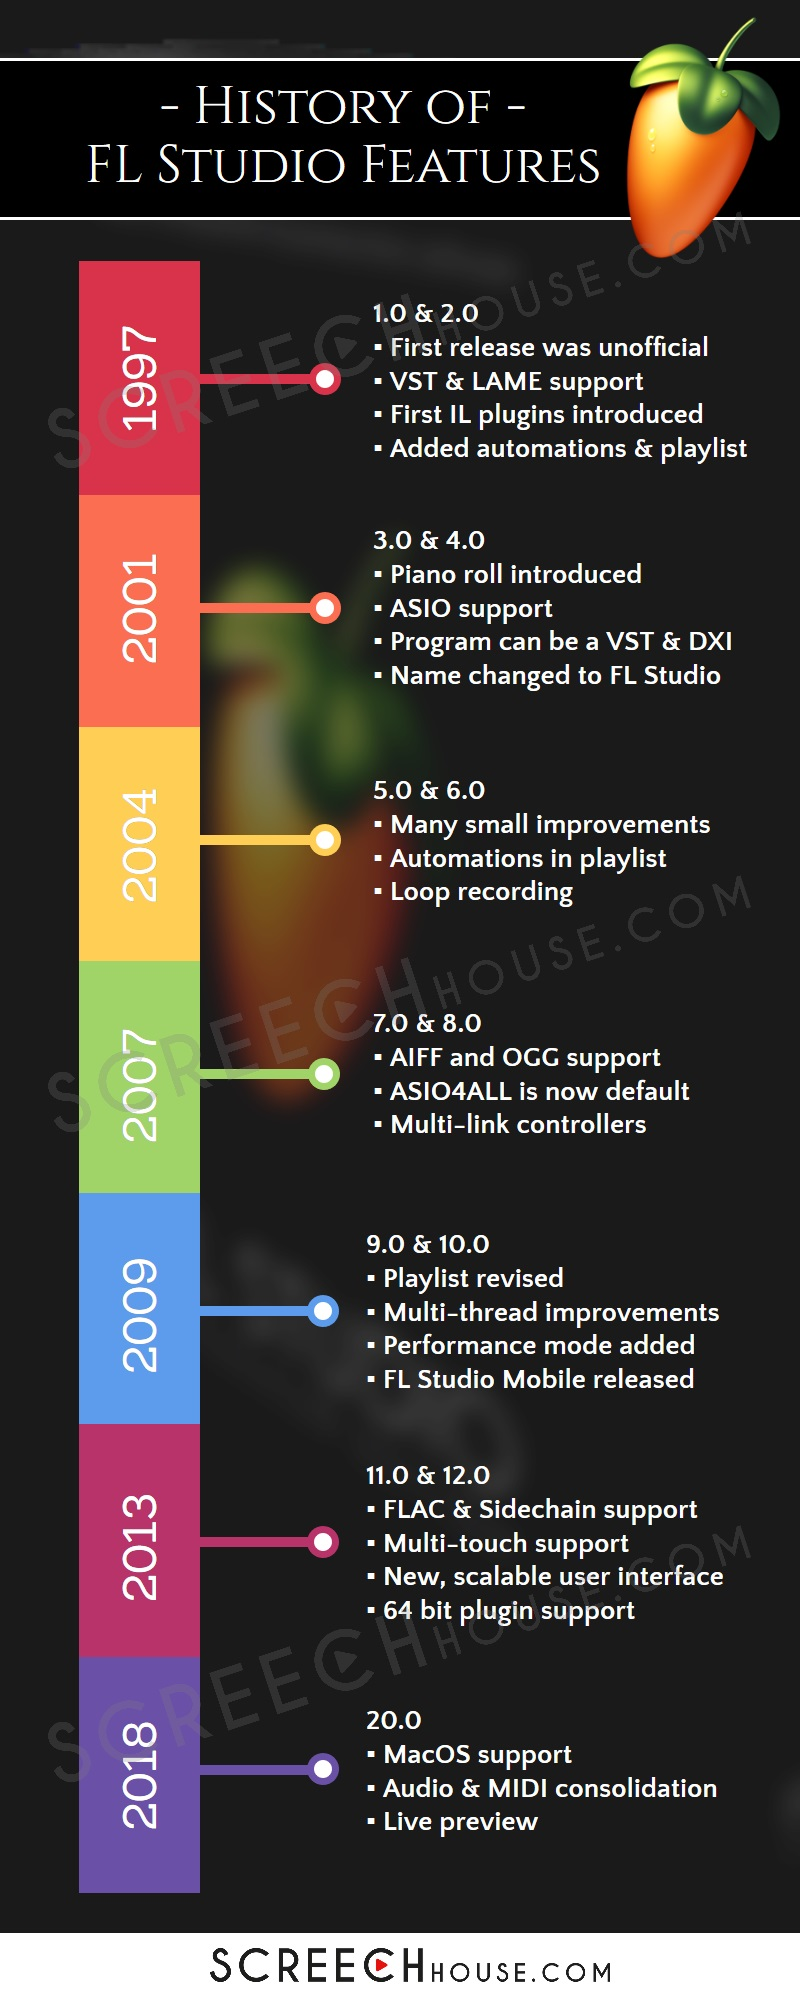 History of FL Studio Features - Infographic